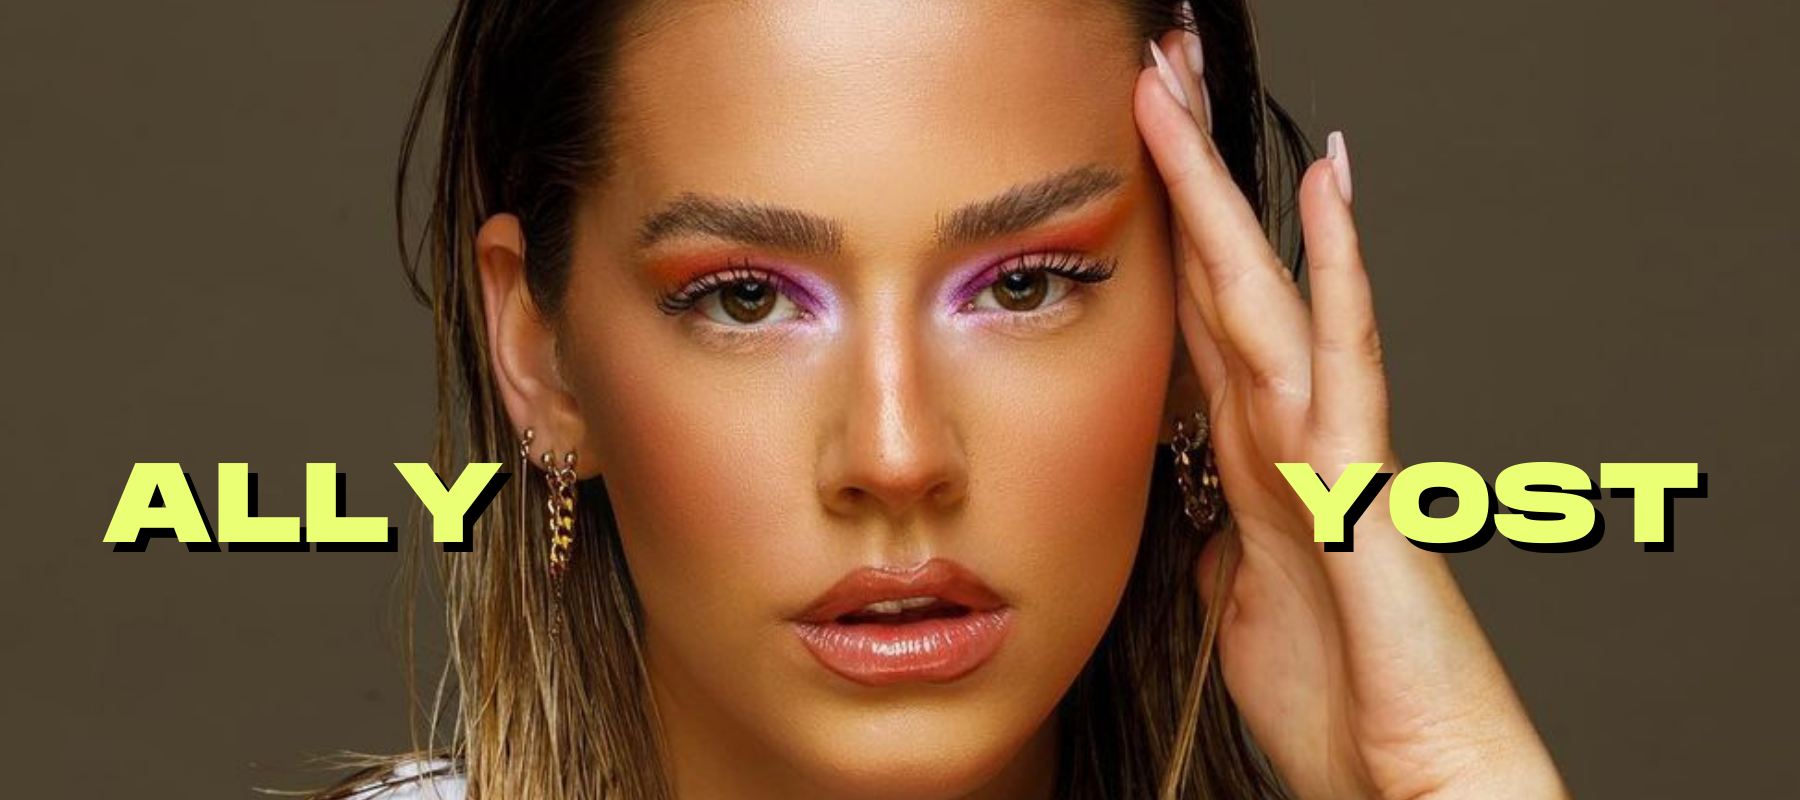 A Chat With Ally Yost On Makeup, Self-Care, And How She Got Her Start On TikTok